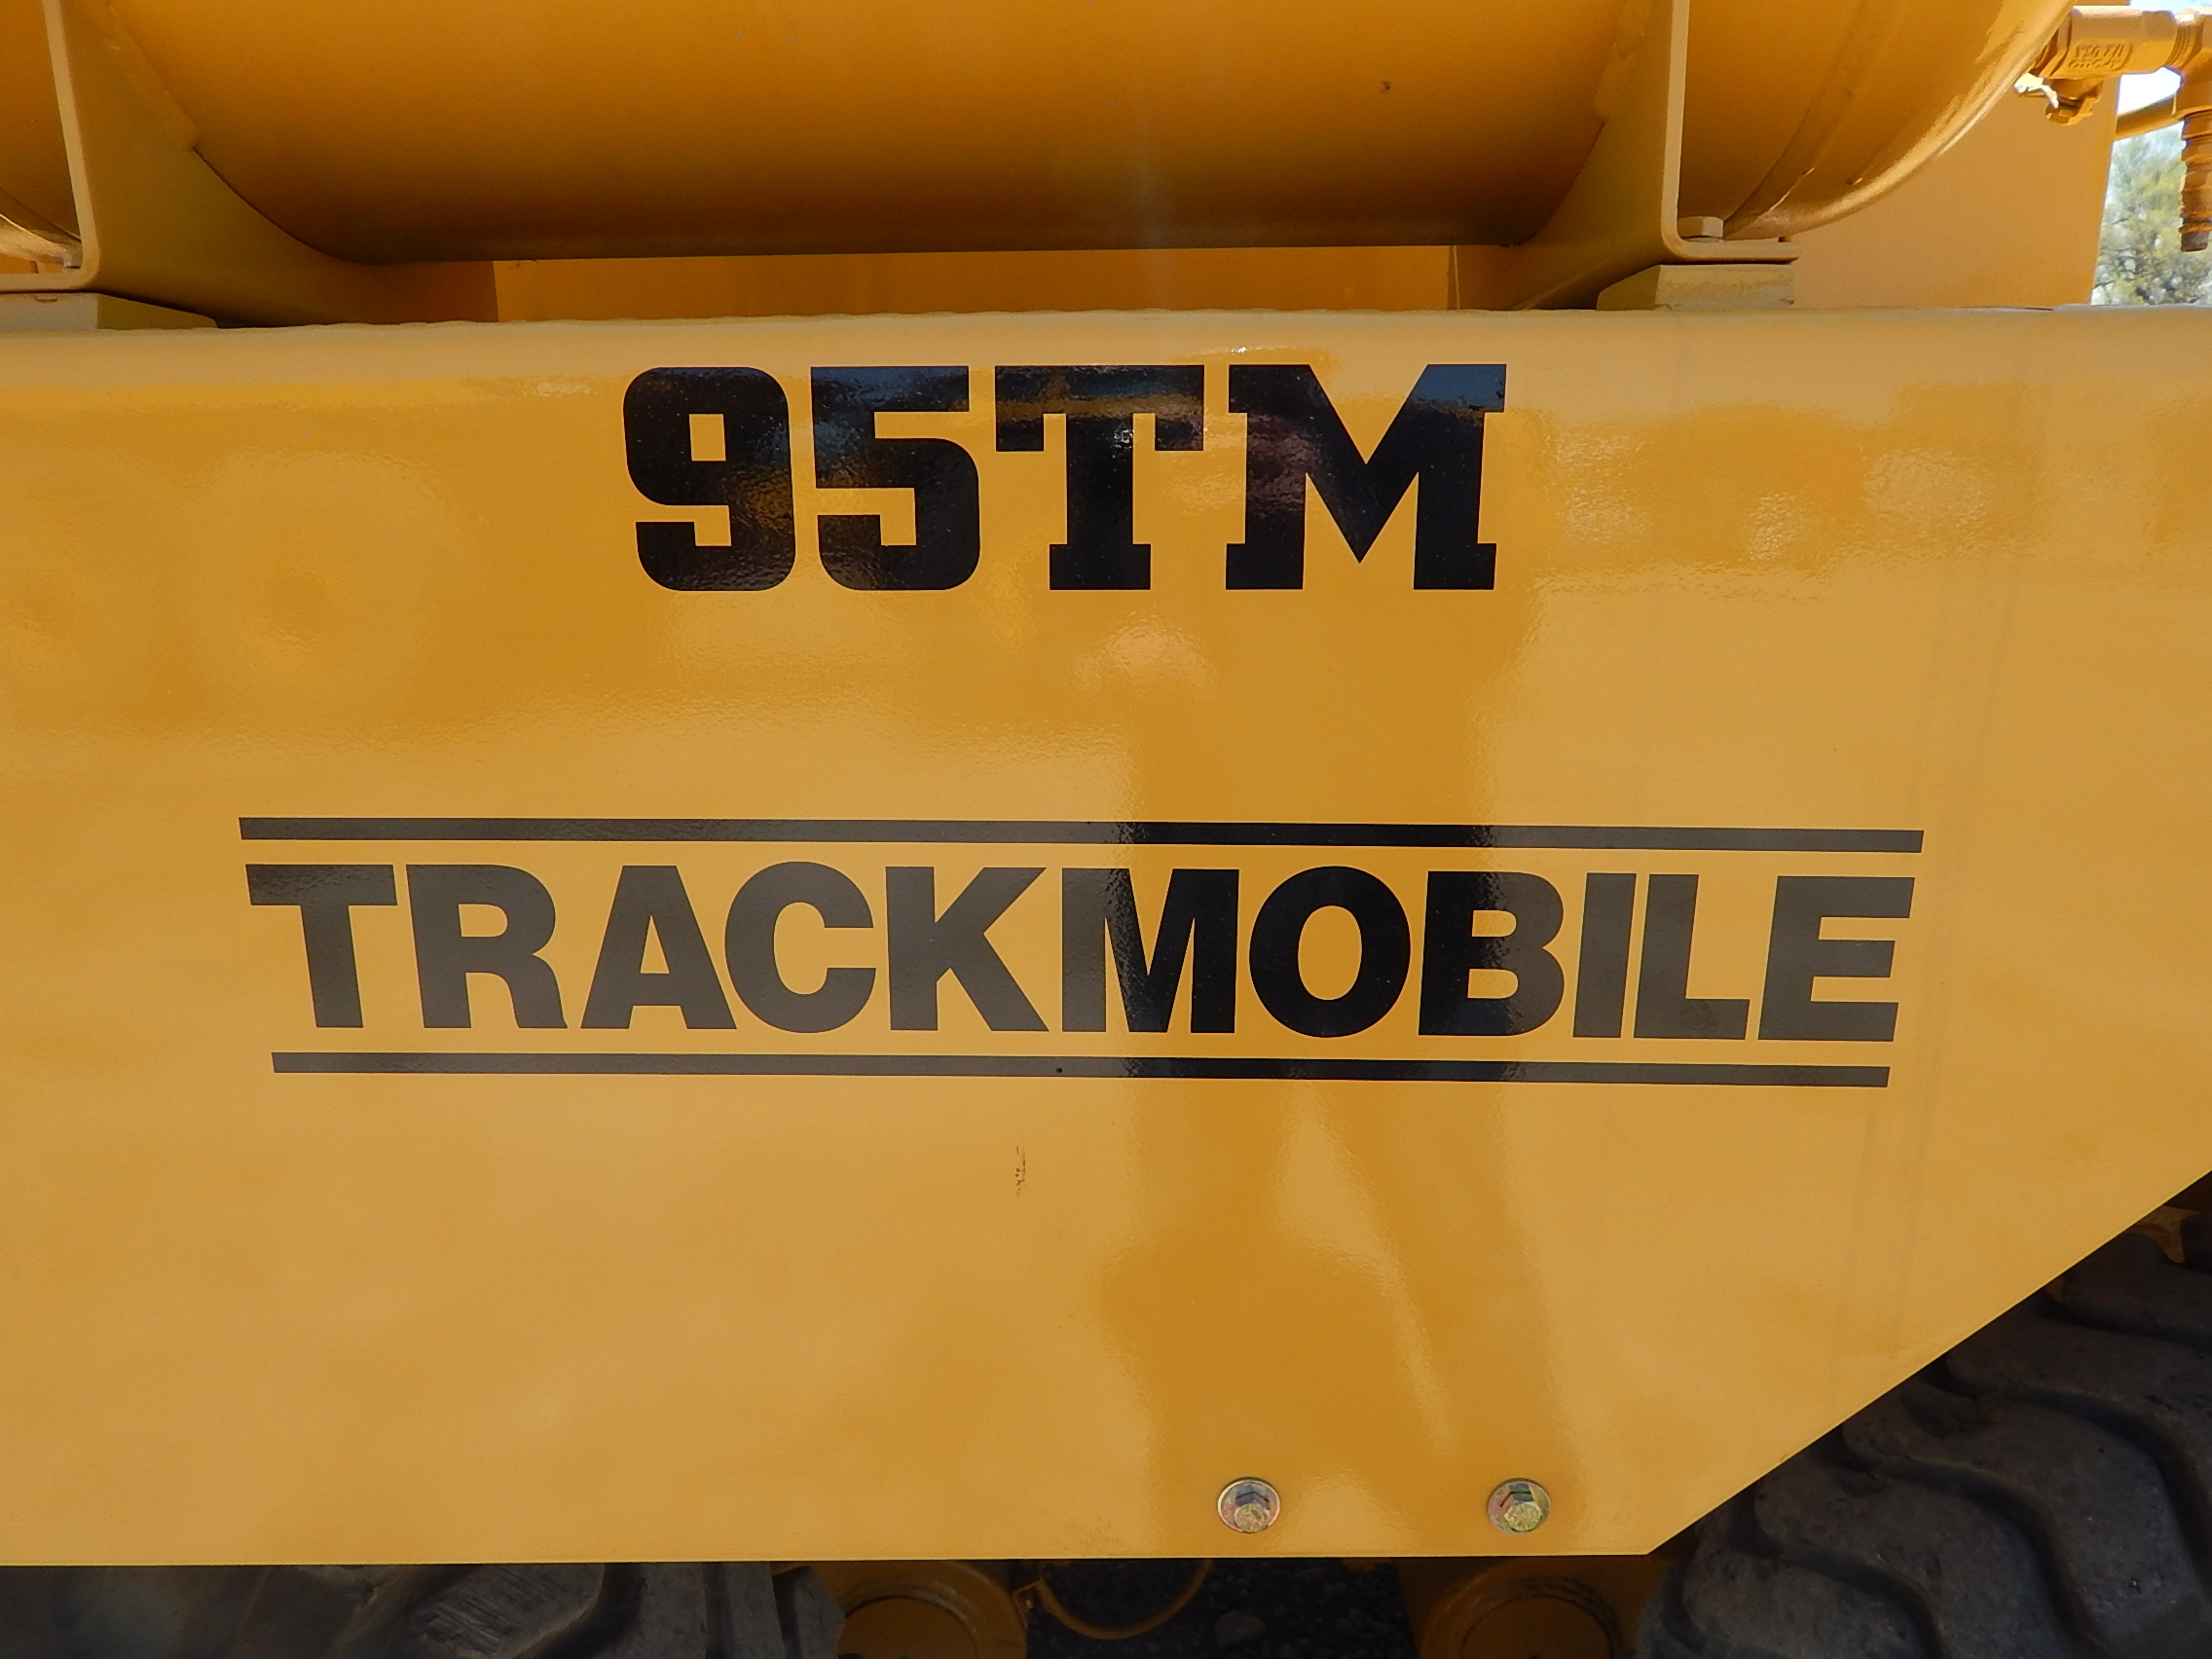 Lot 34 - Trackmobile Model 95TM Railcar Mover, s/n LGN 960961289, 3-Speed Automatic Transmission, 27 in